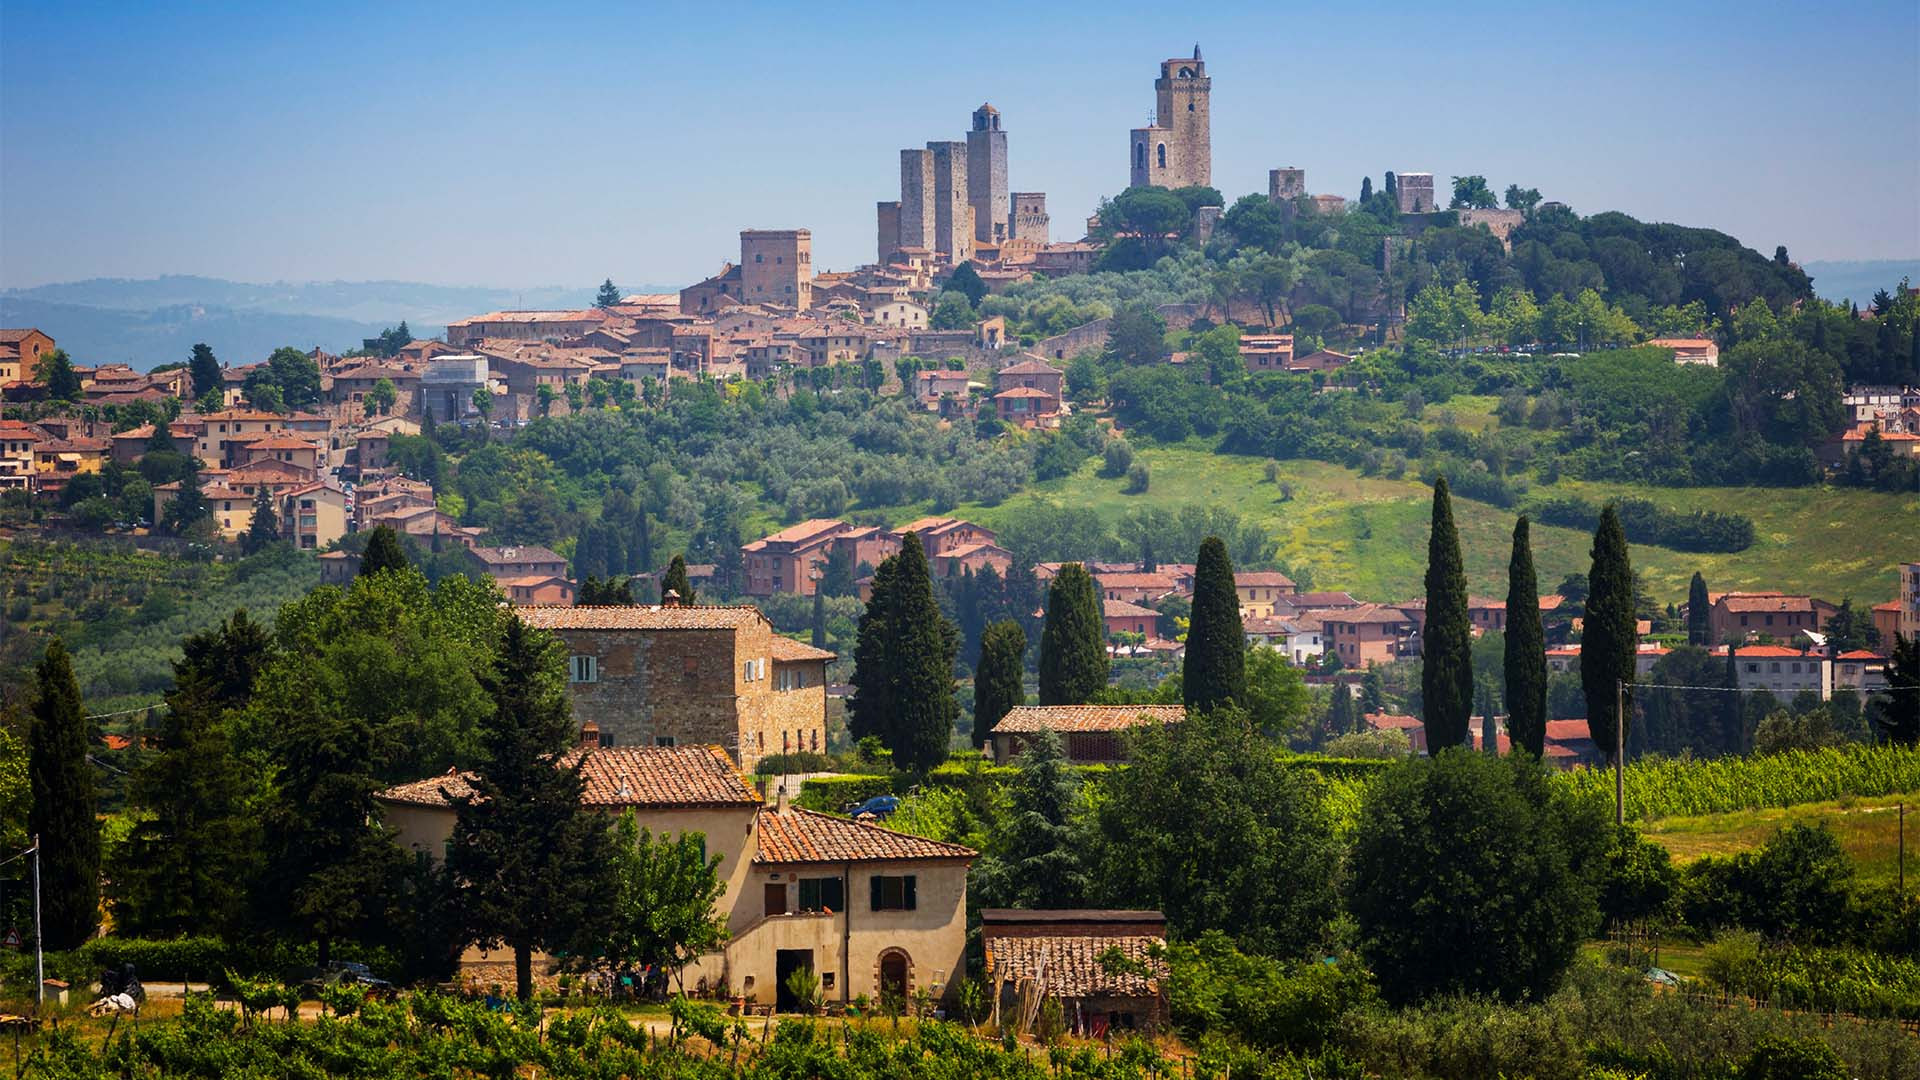 View of Siena, Italy from the Tuscan countryside